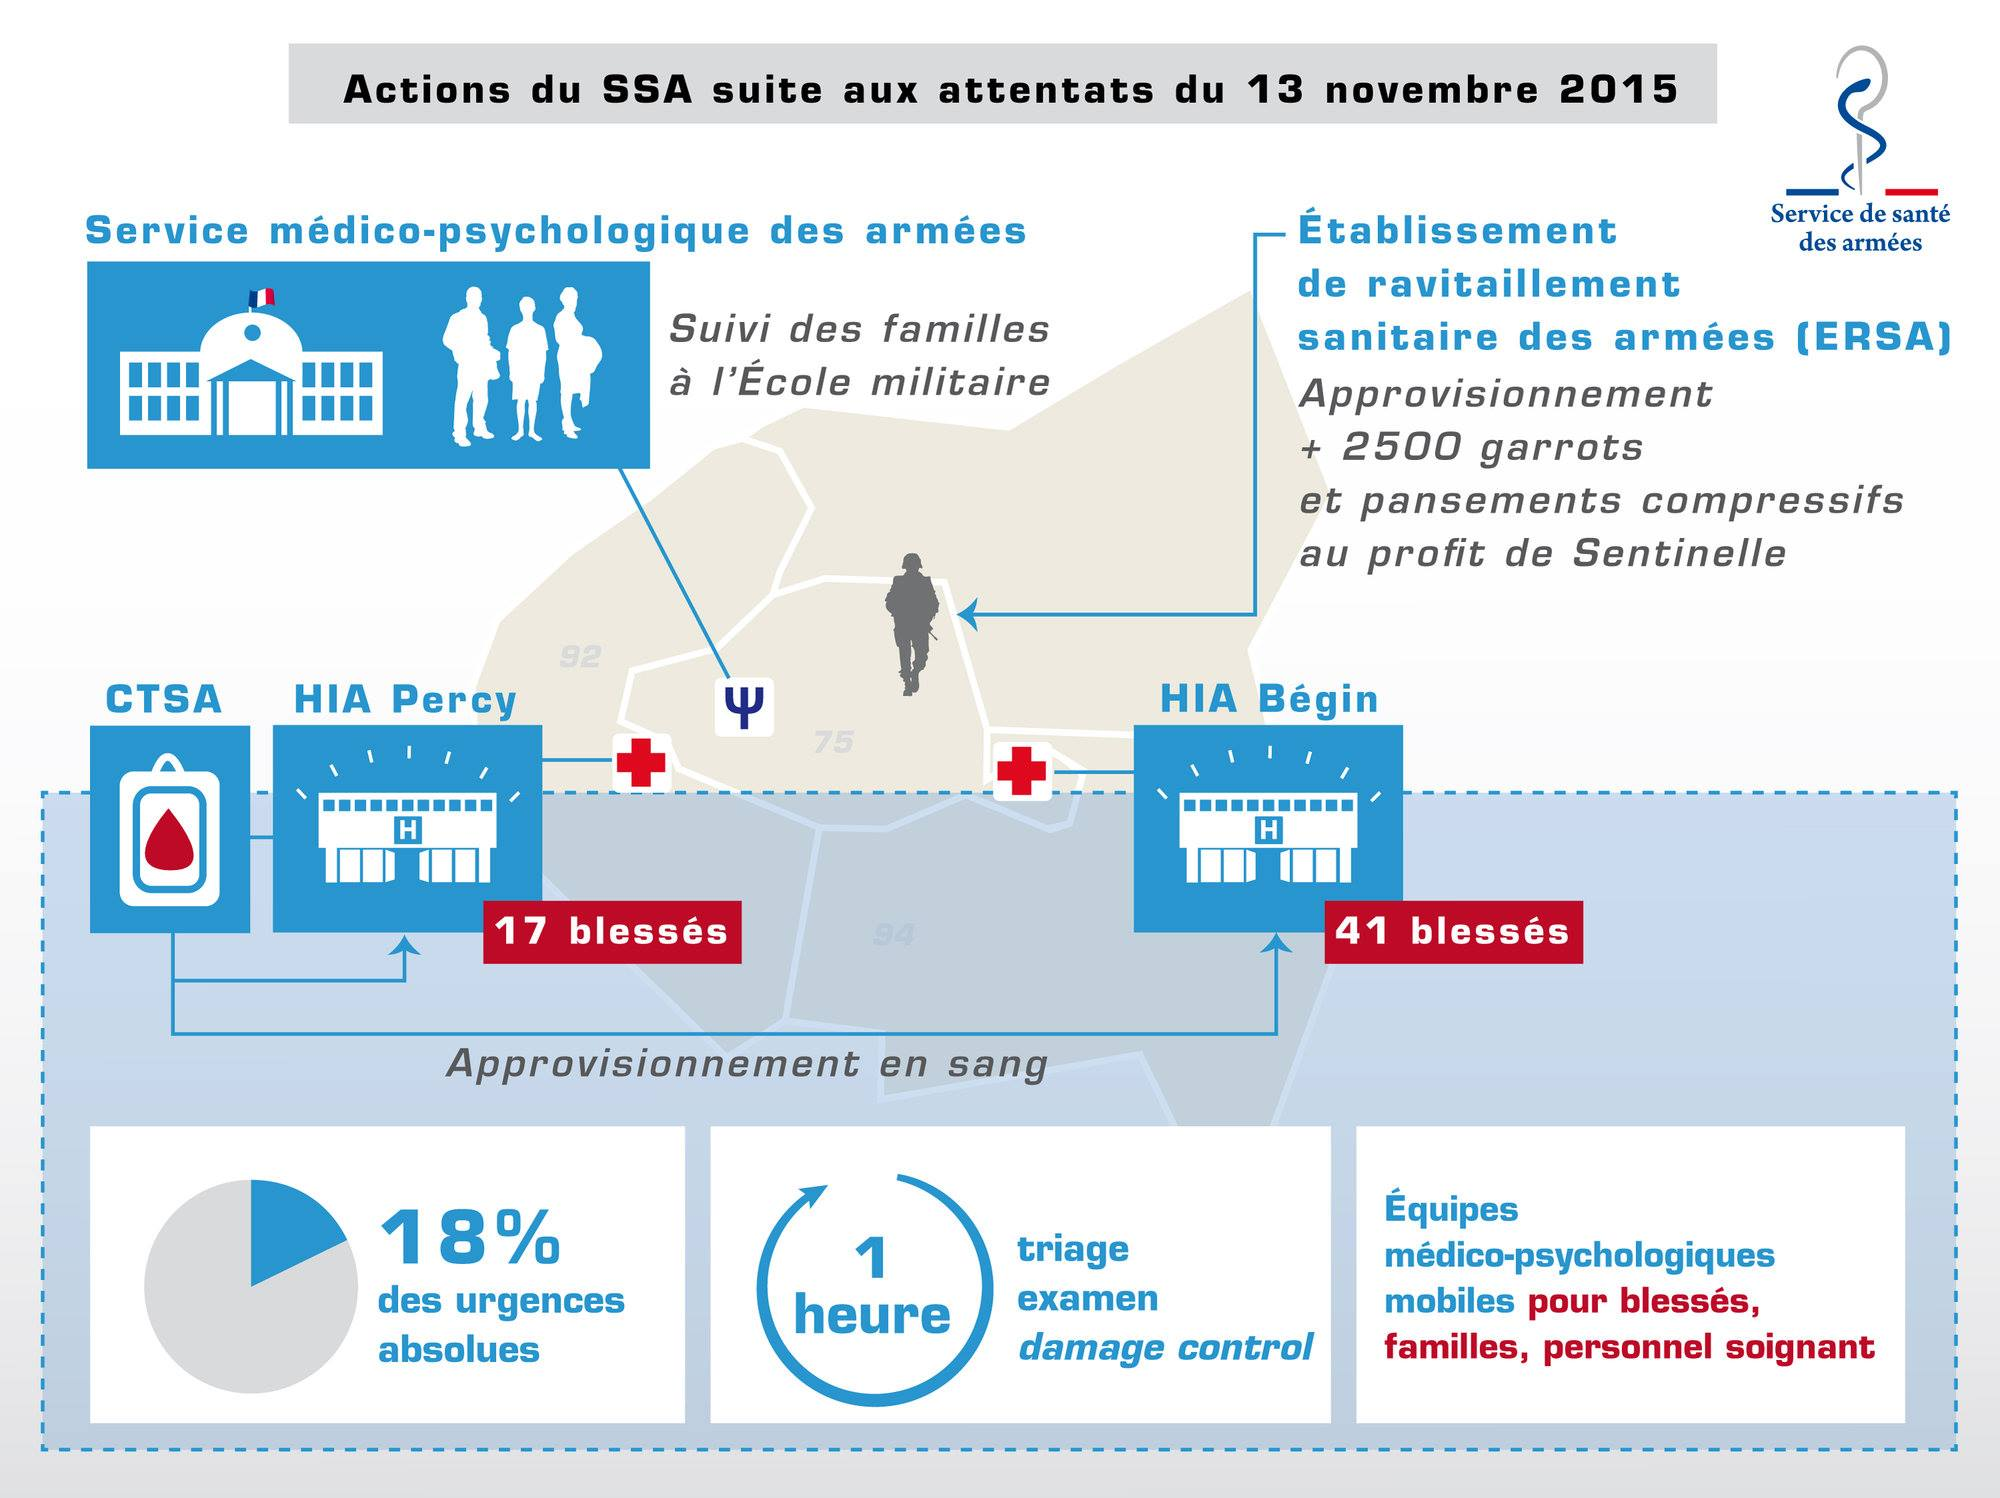 2015_11_action_ssa_attentats_novembre